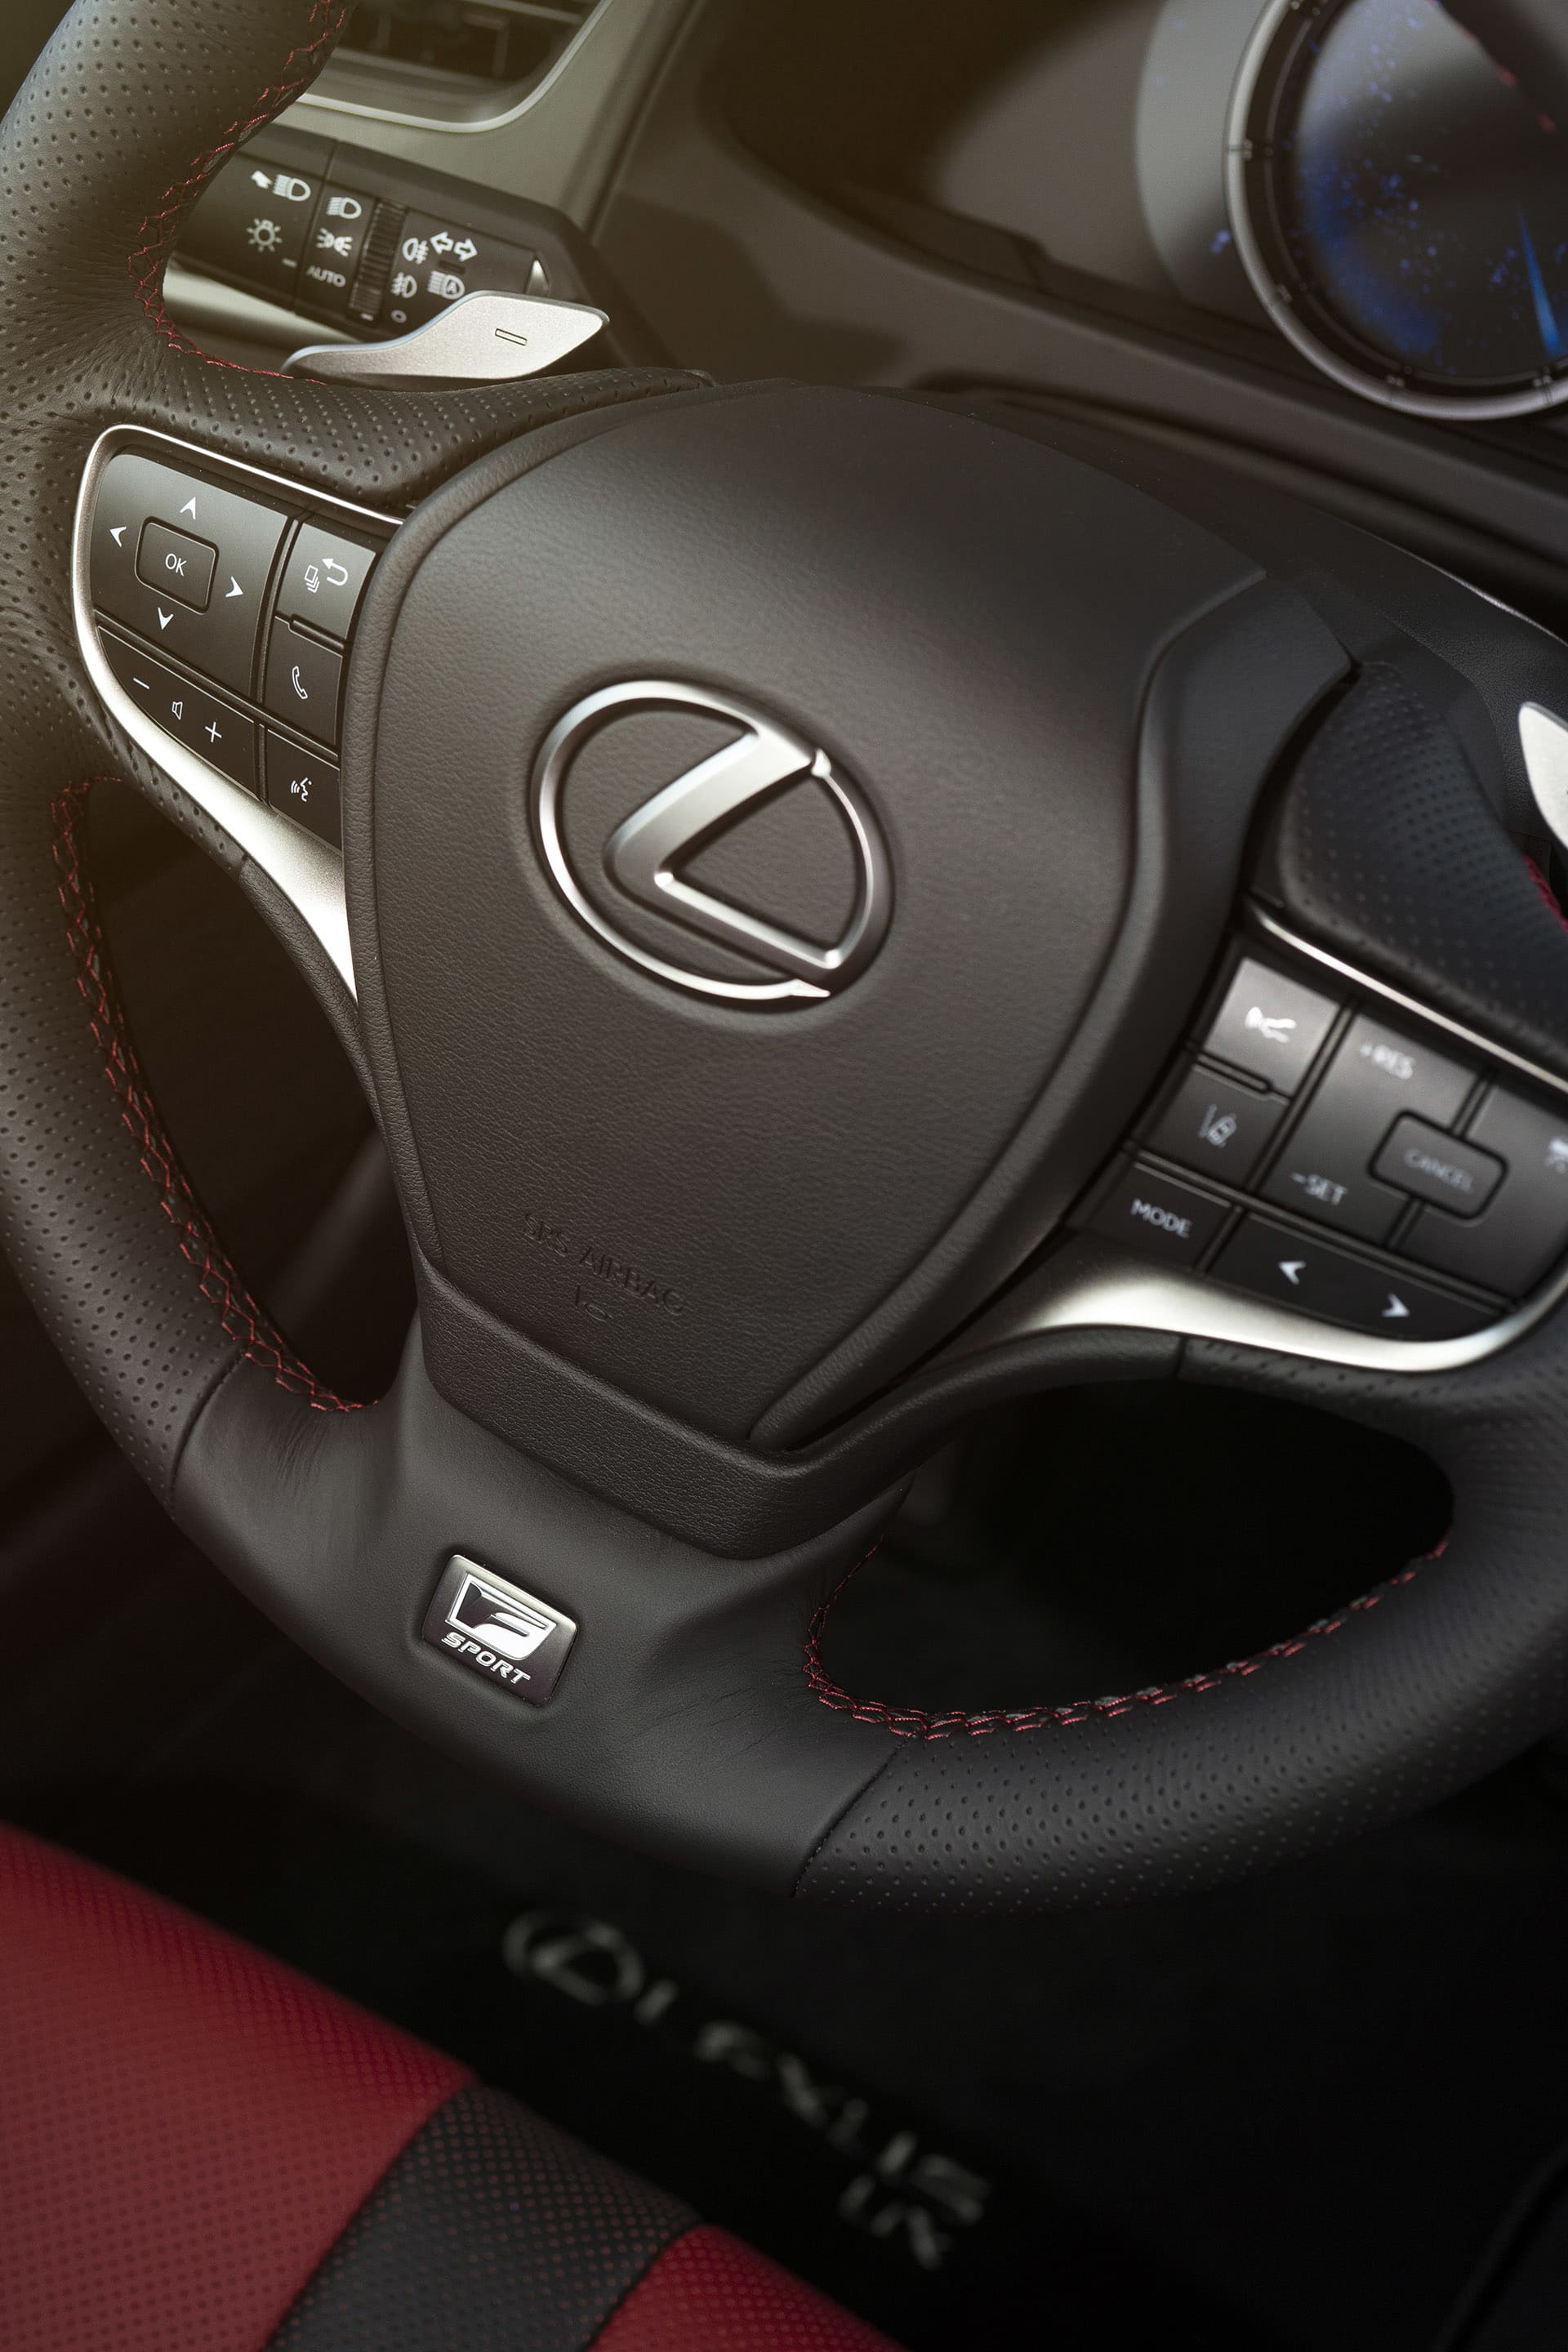 Lexus has not chosen the path of as few buttons as possible, but the opposite. If you like it or not is up to you.